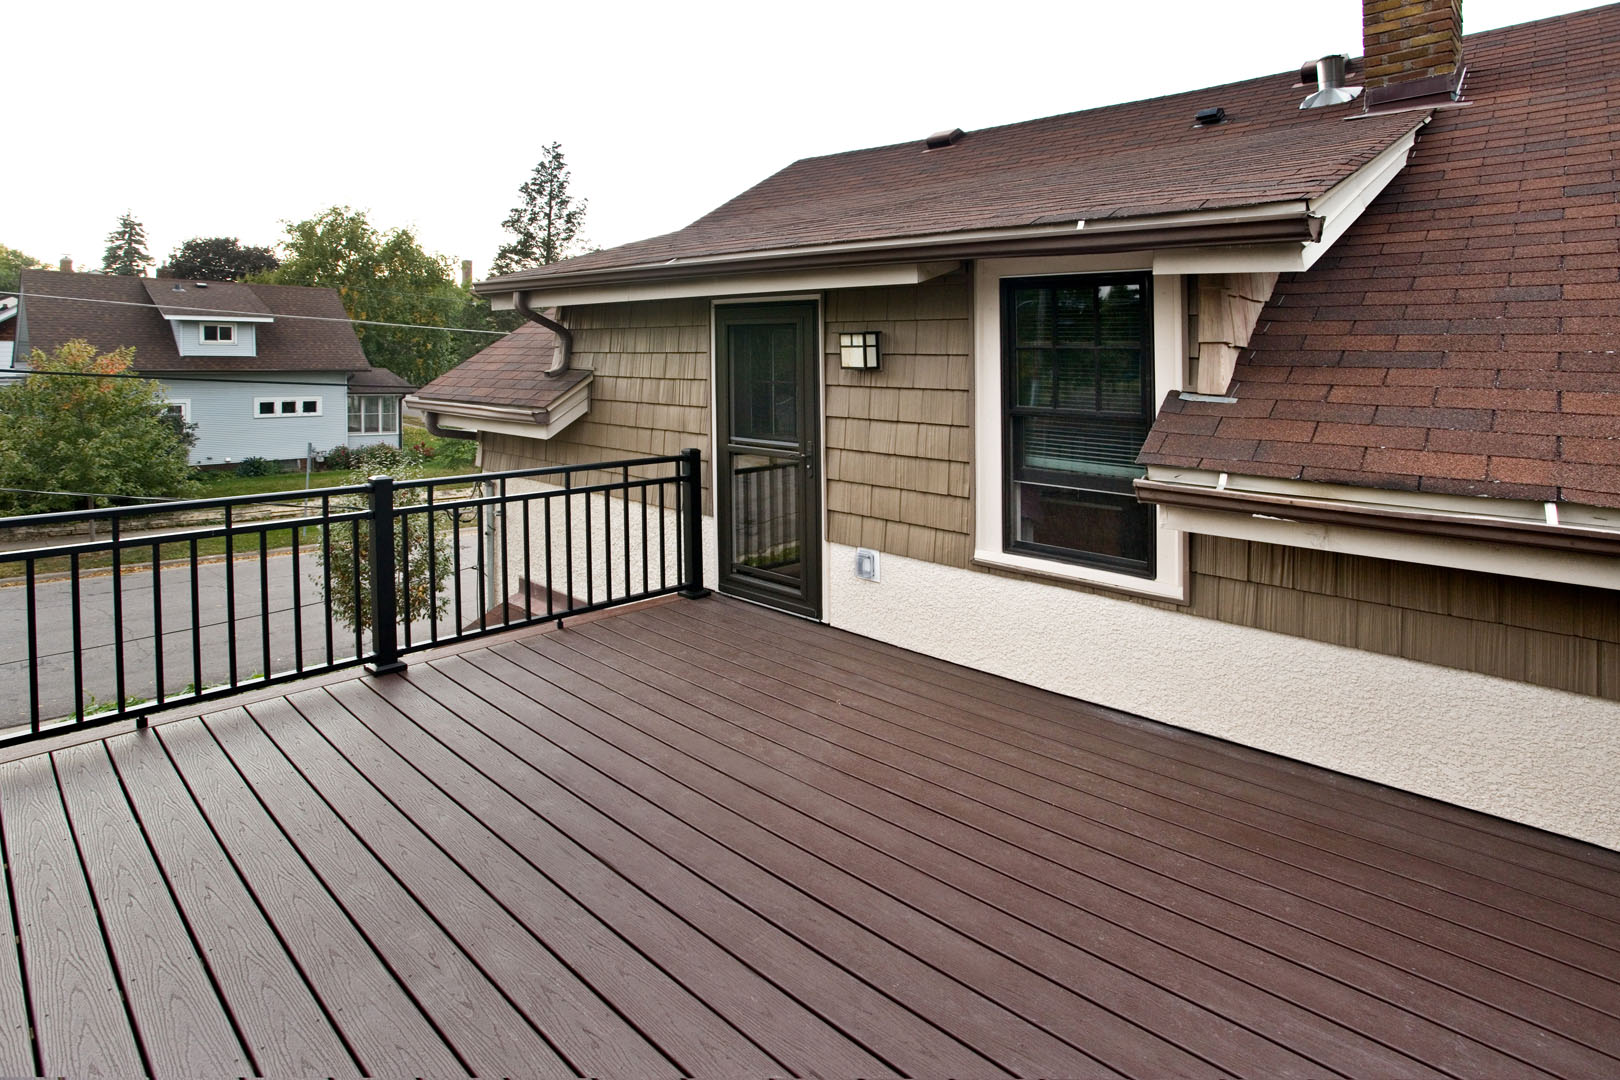 Roof deck off bathroom and mudroom addition